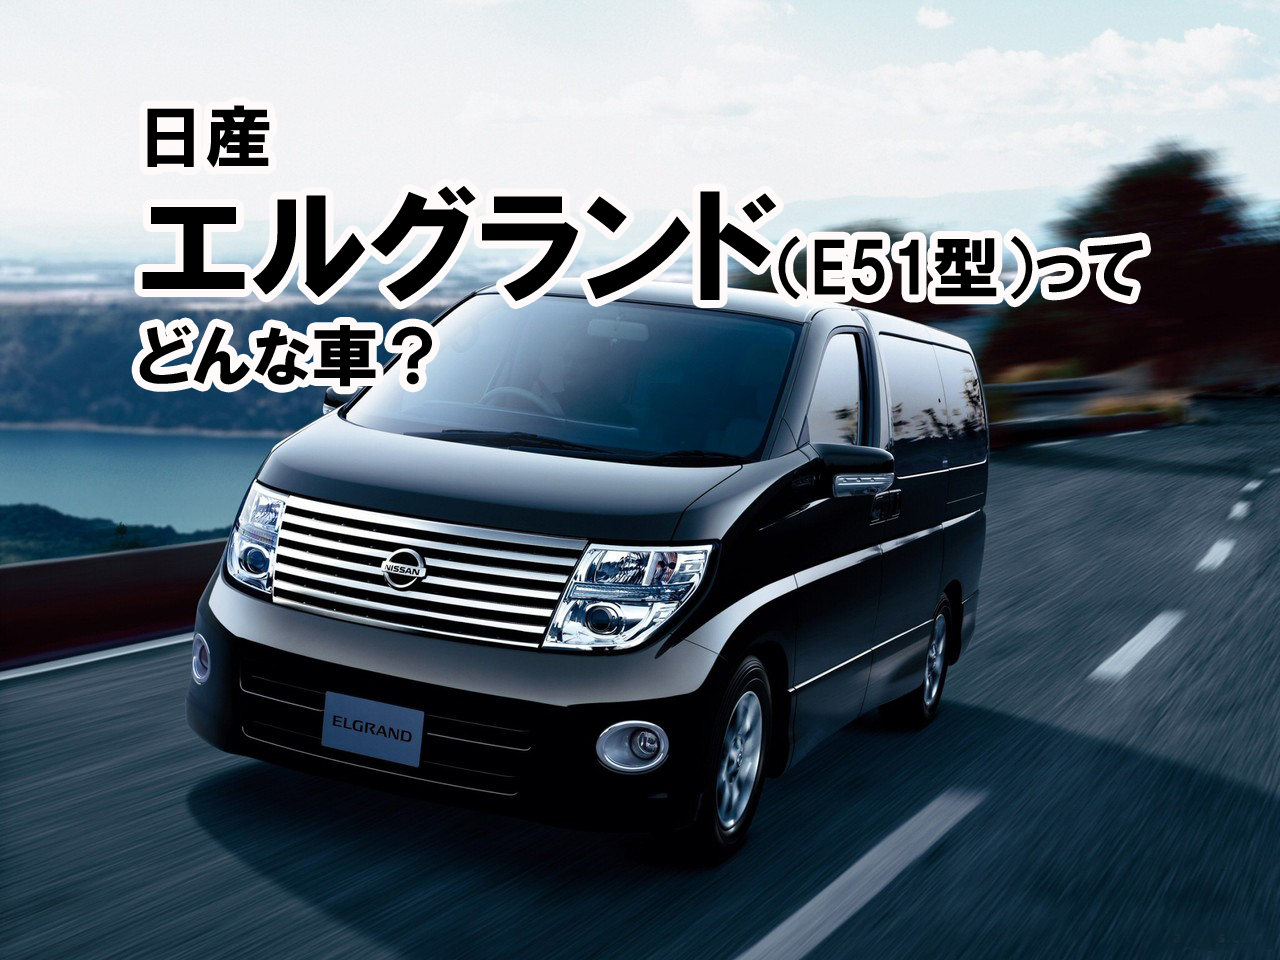 nissan_elgrand_2002_picture